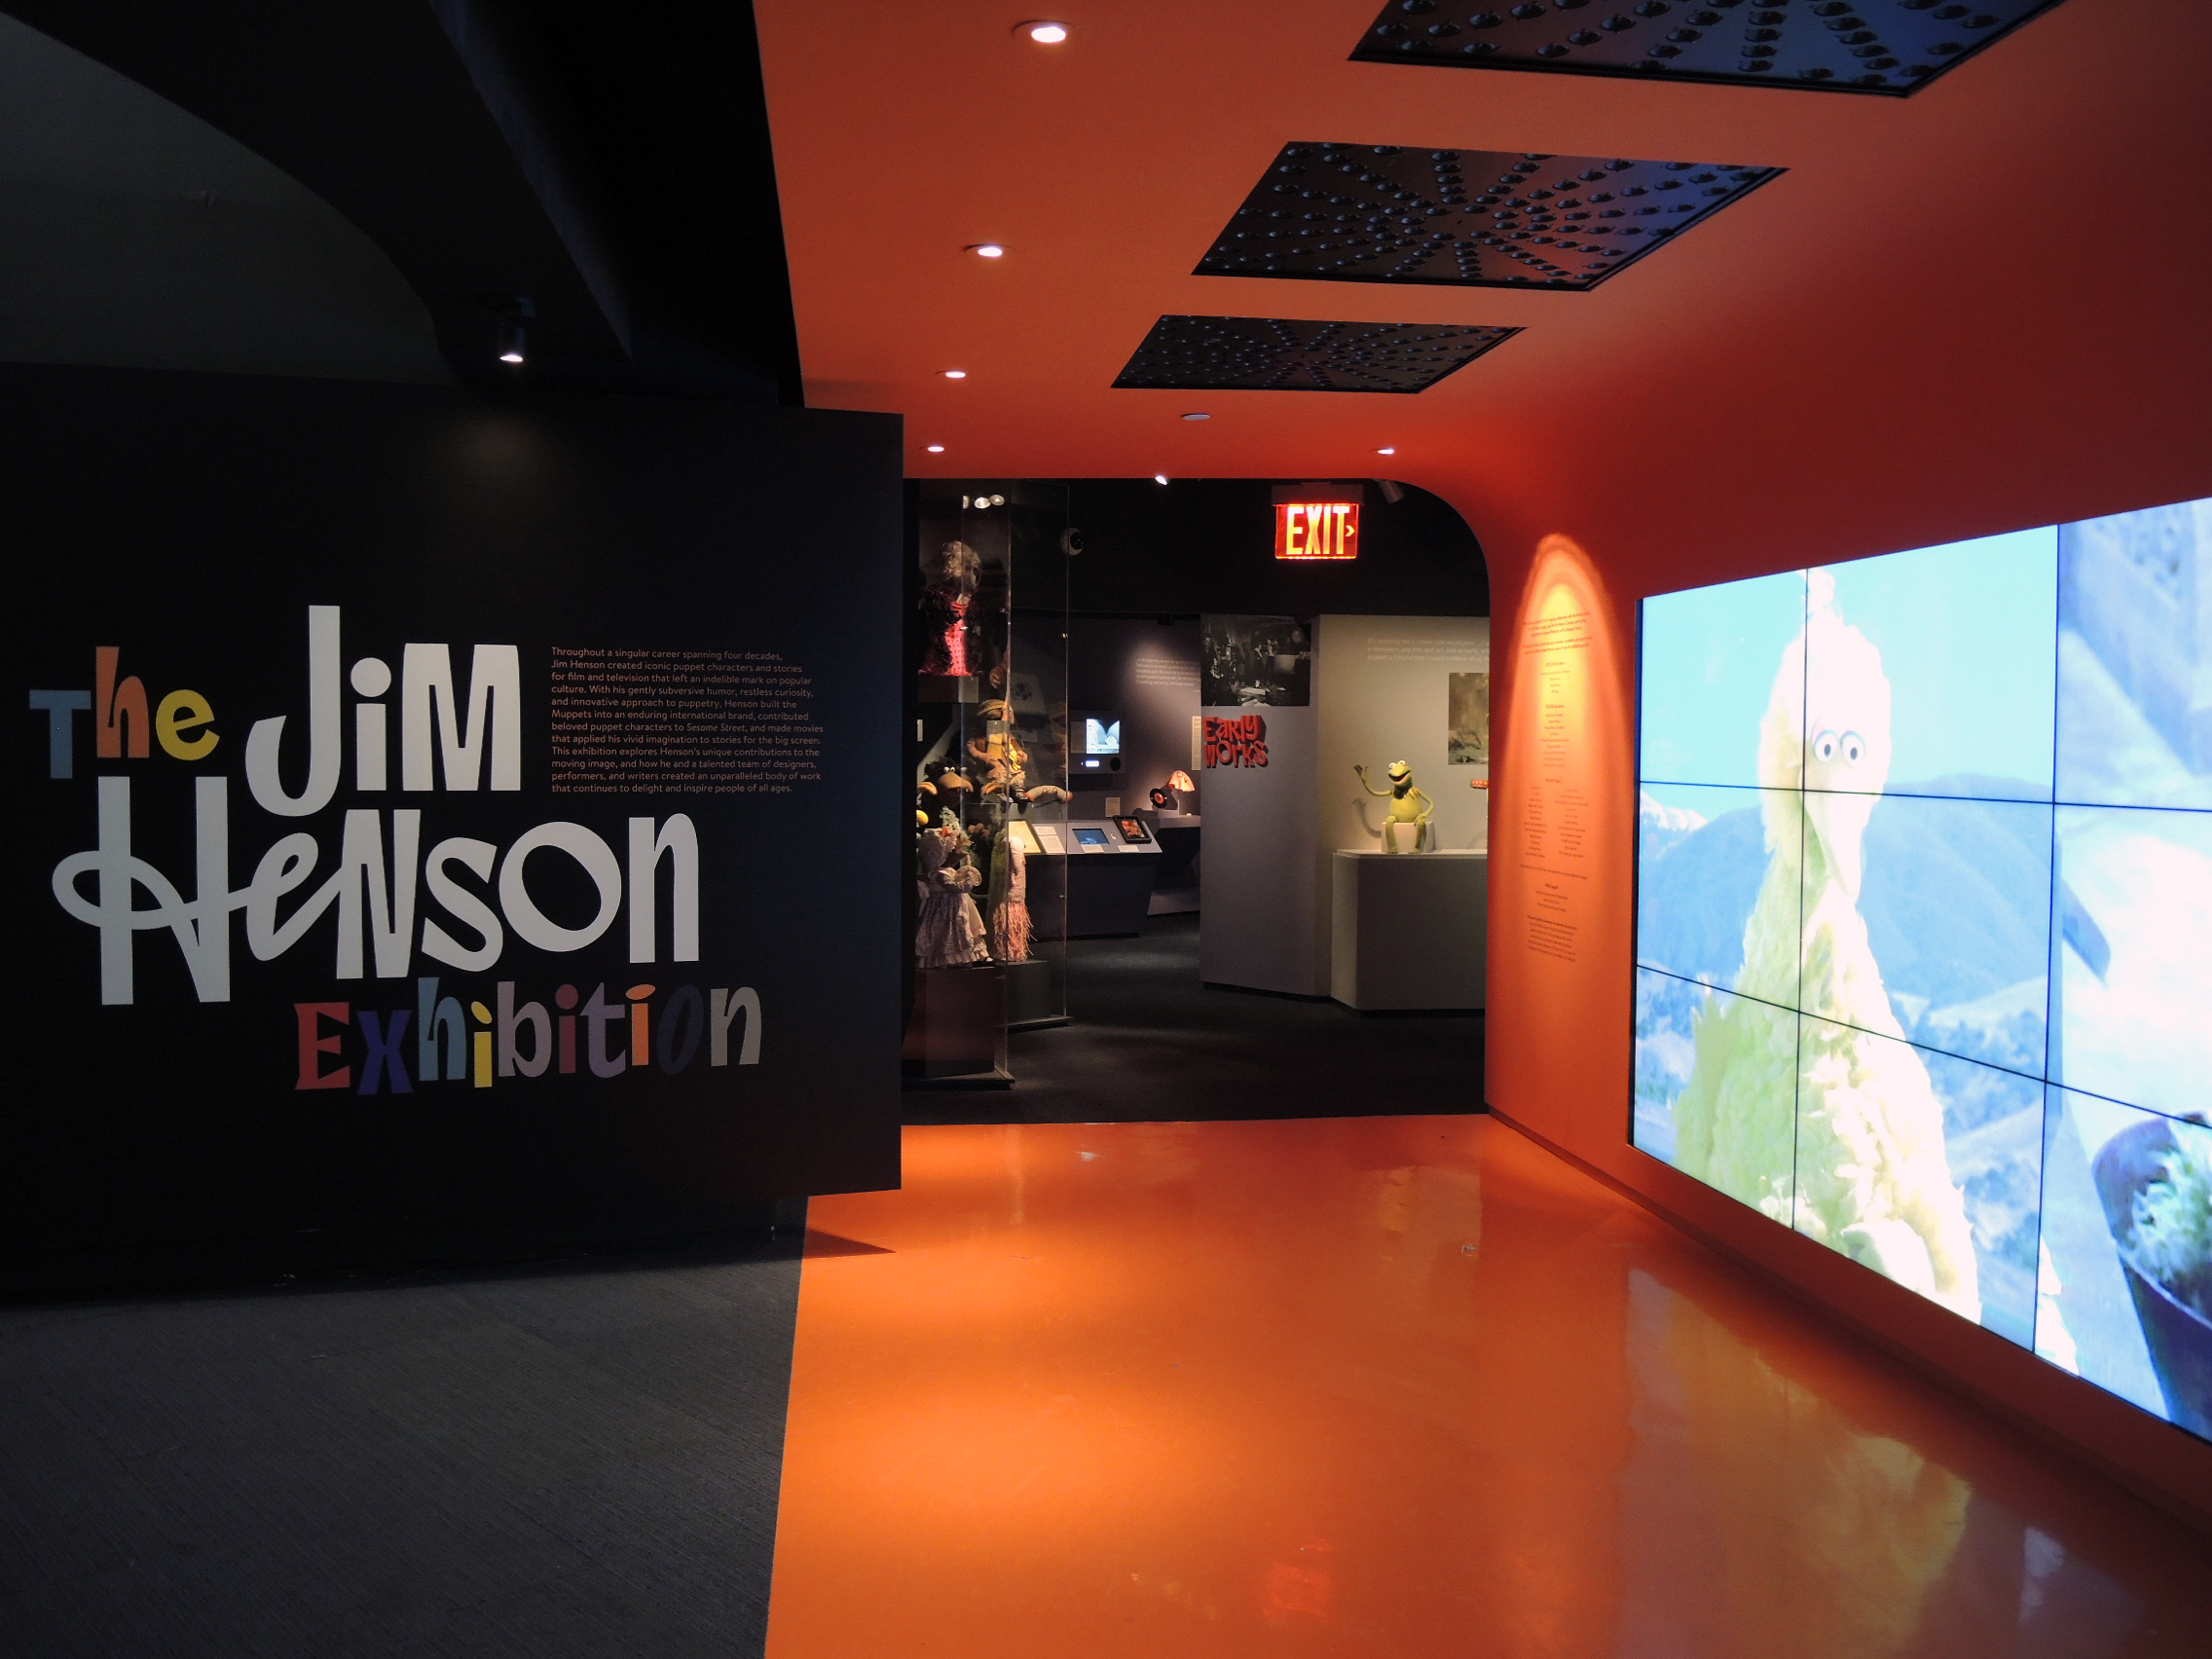 The Jim Henson Exhibit